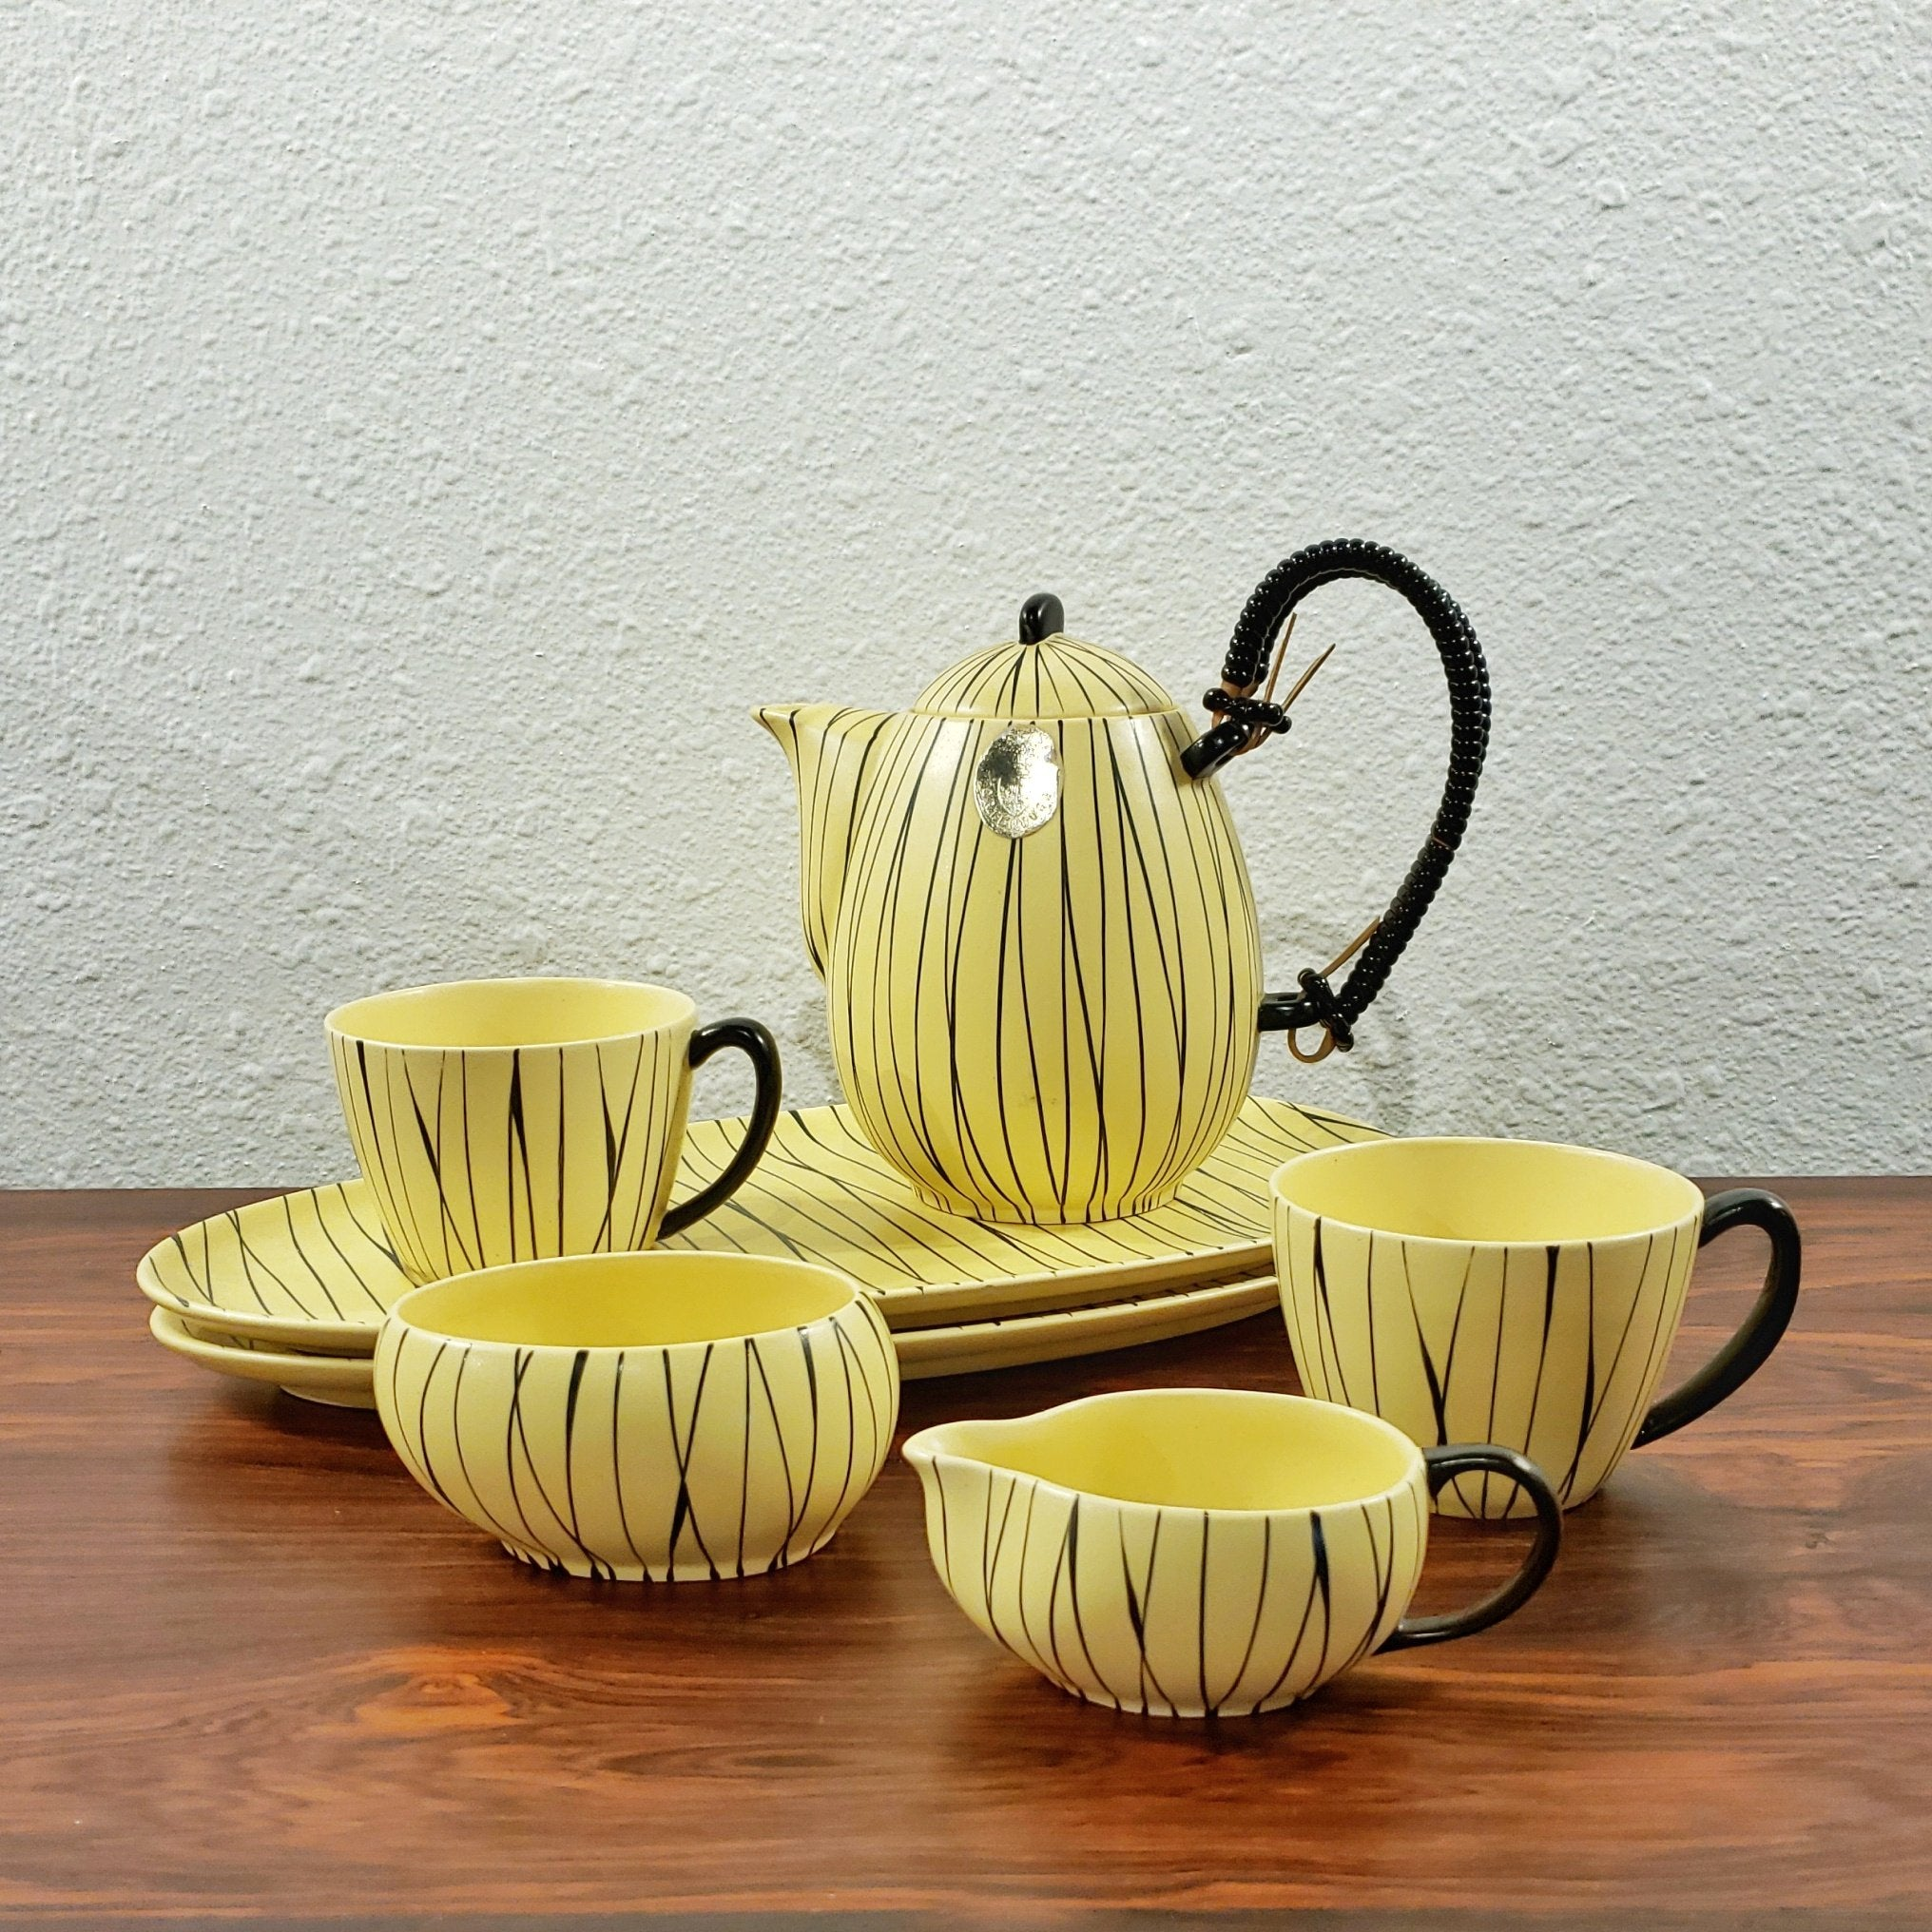 SEBASTIANO BUSCETTA 'MEHIKANA' TEA SET FOR GRÄFLICH ORTENBURG